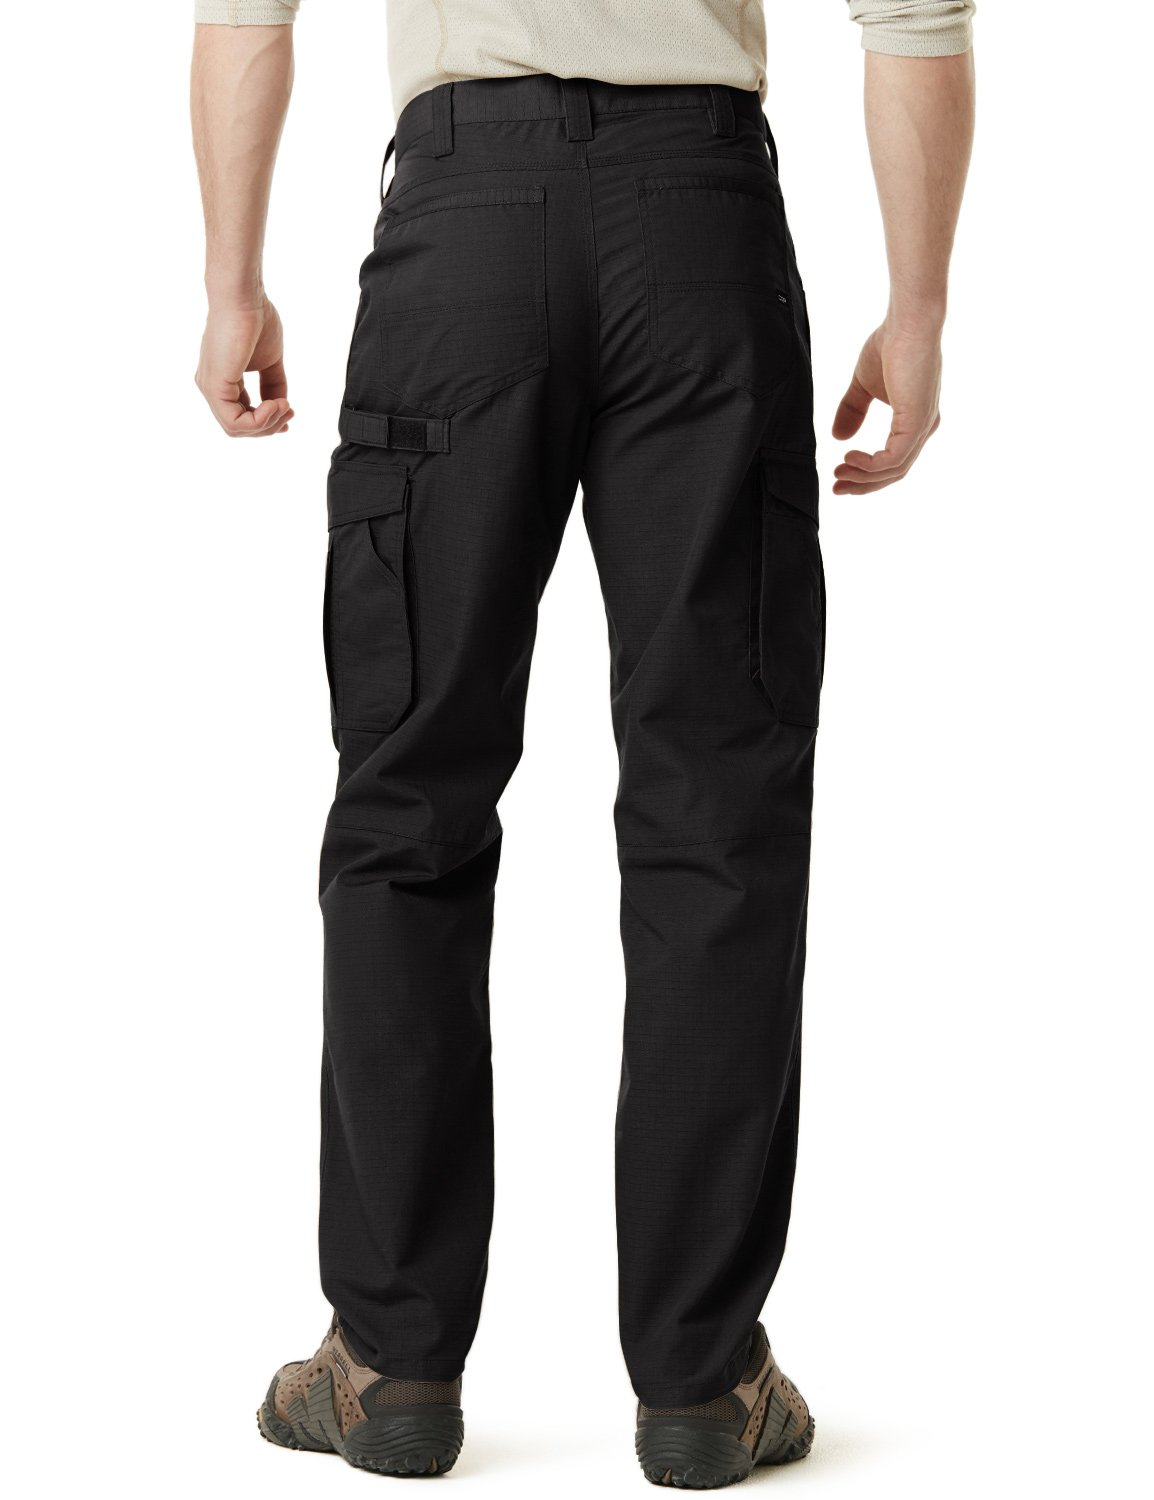 CQR CQ-TWP302-BLK_38W/34L Men's Operator Rip-Stop Tactical Work Utility Pants EDC TWP302 by CQR (Image #4)